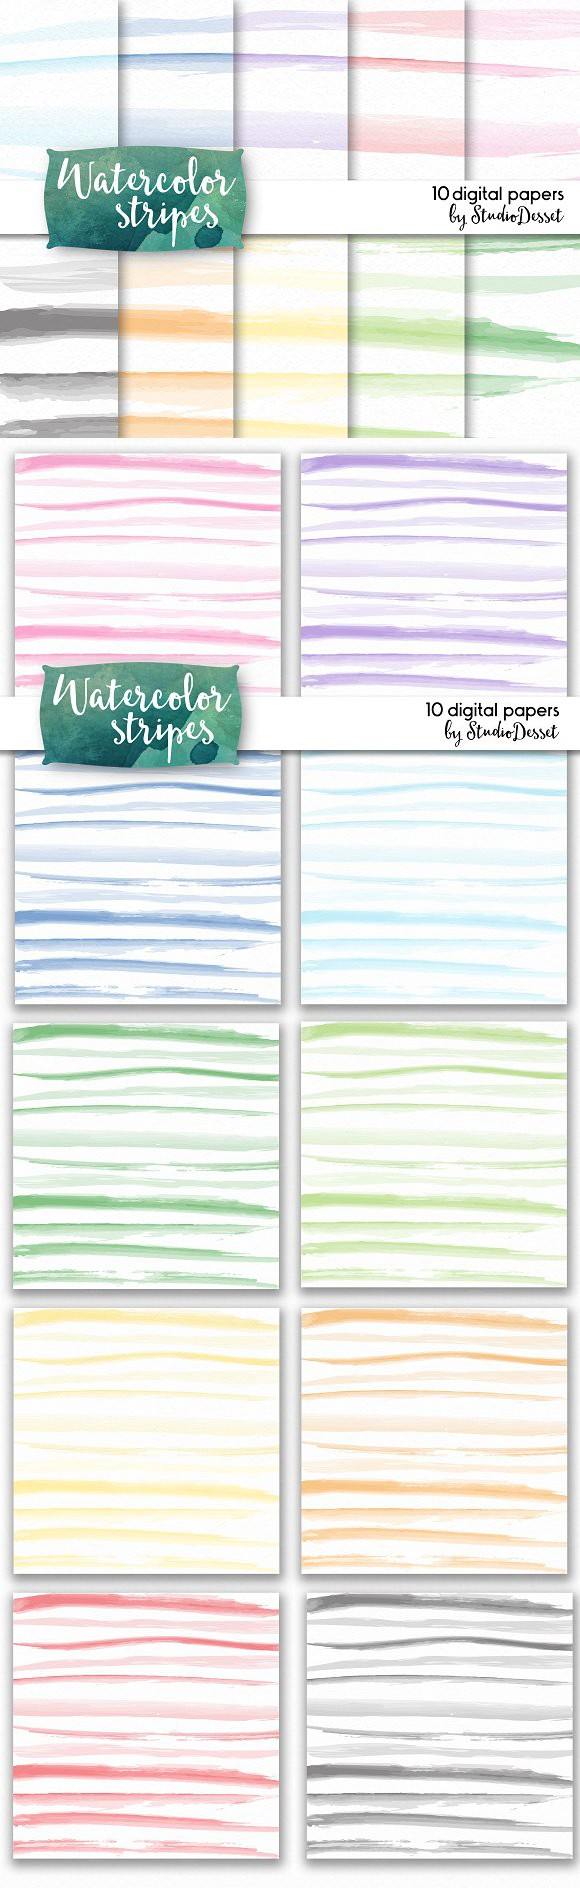 Watercolor Stripes - digital papers. Patterns